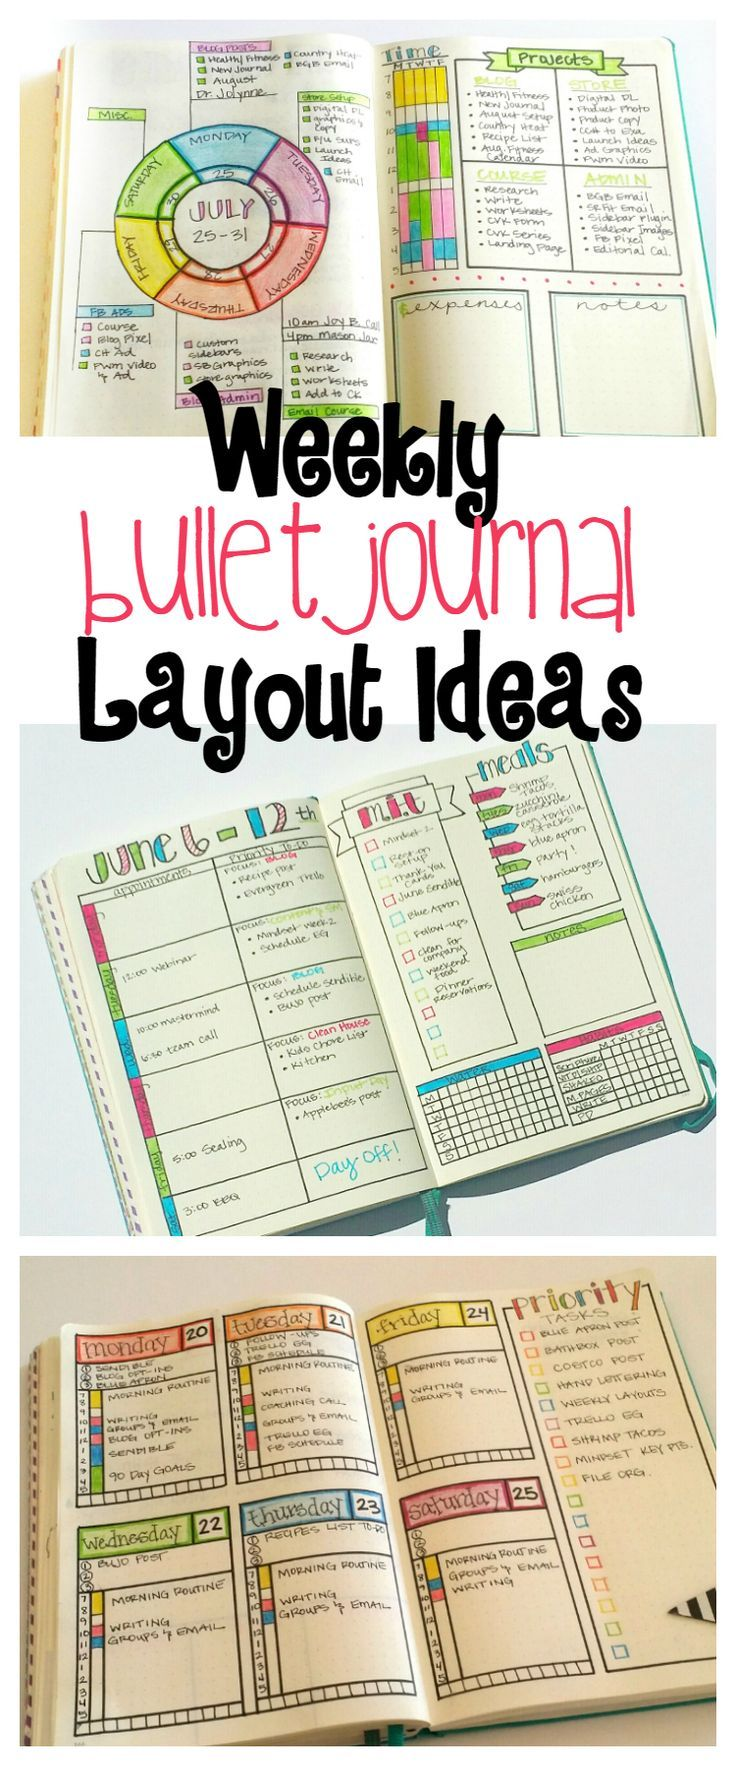 Bullet Journal Weekly Layout Ideas